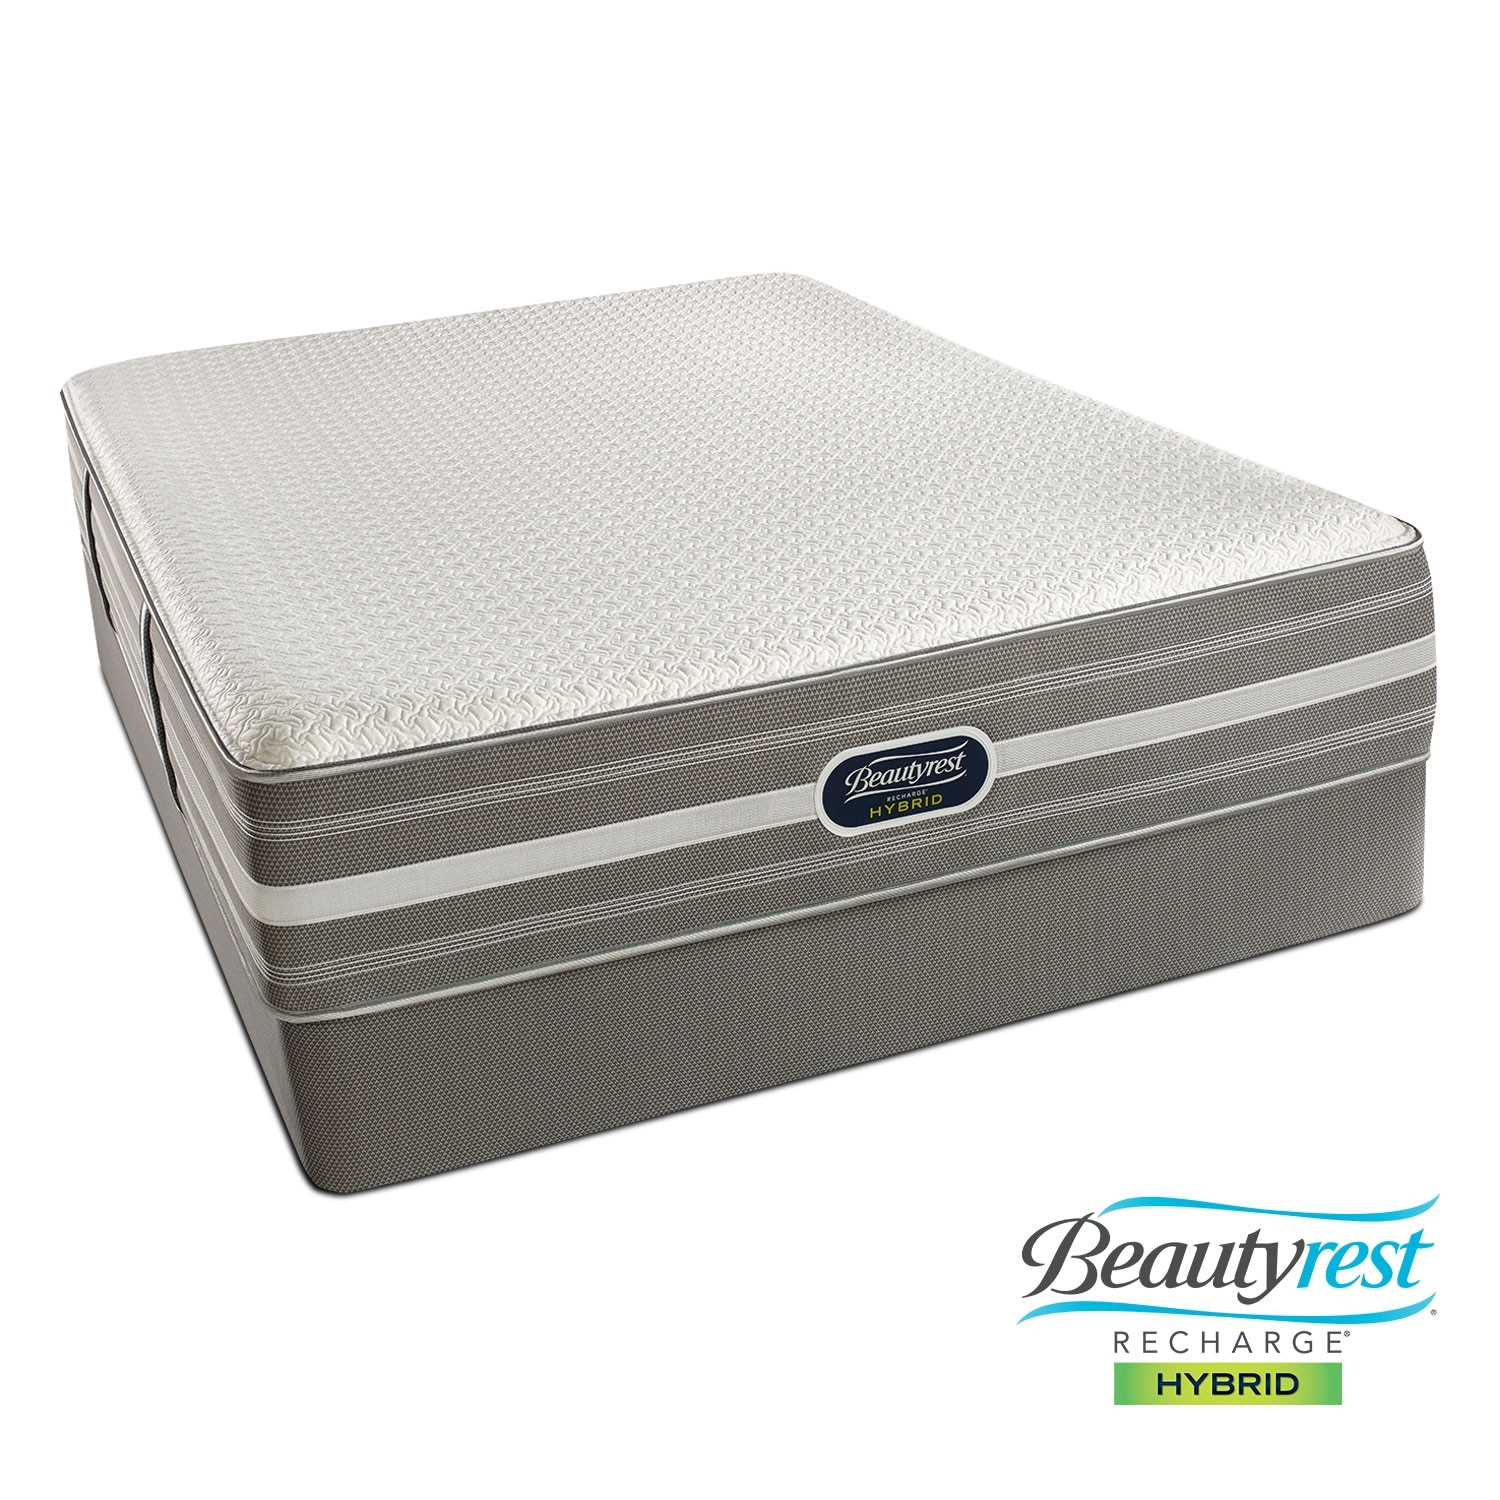 Mattresses and Bedding - Hopewell Luxury Firm Queen Mattress/Foundation Set